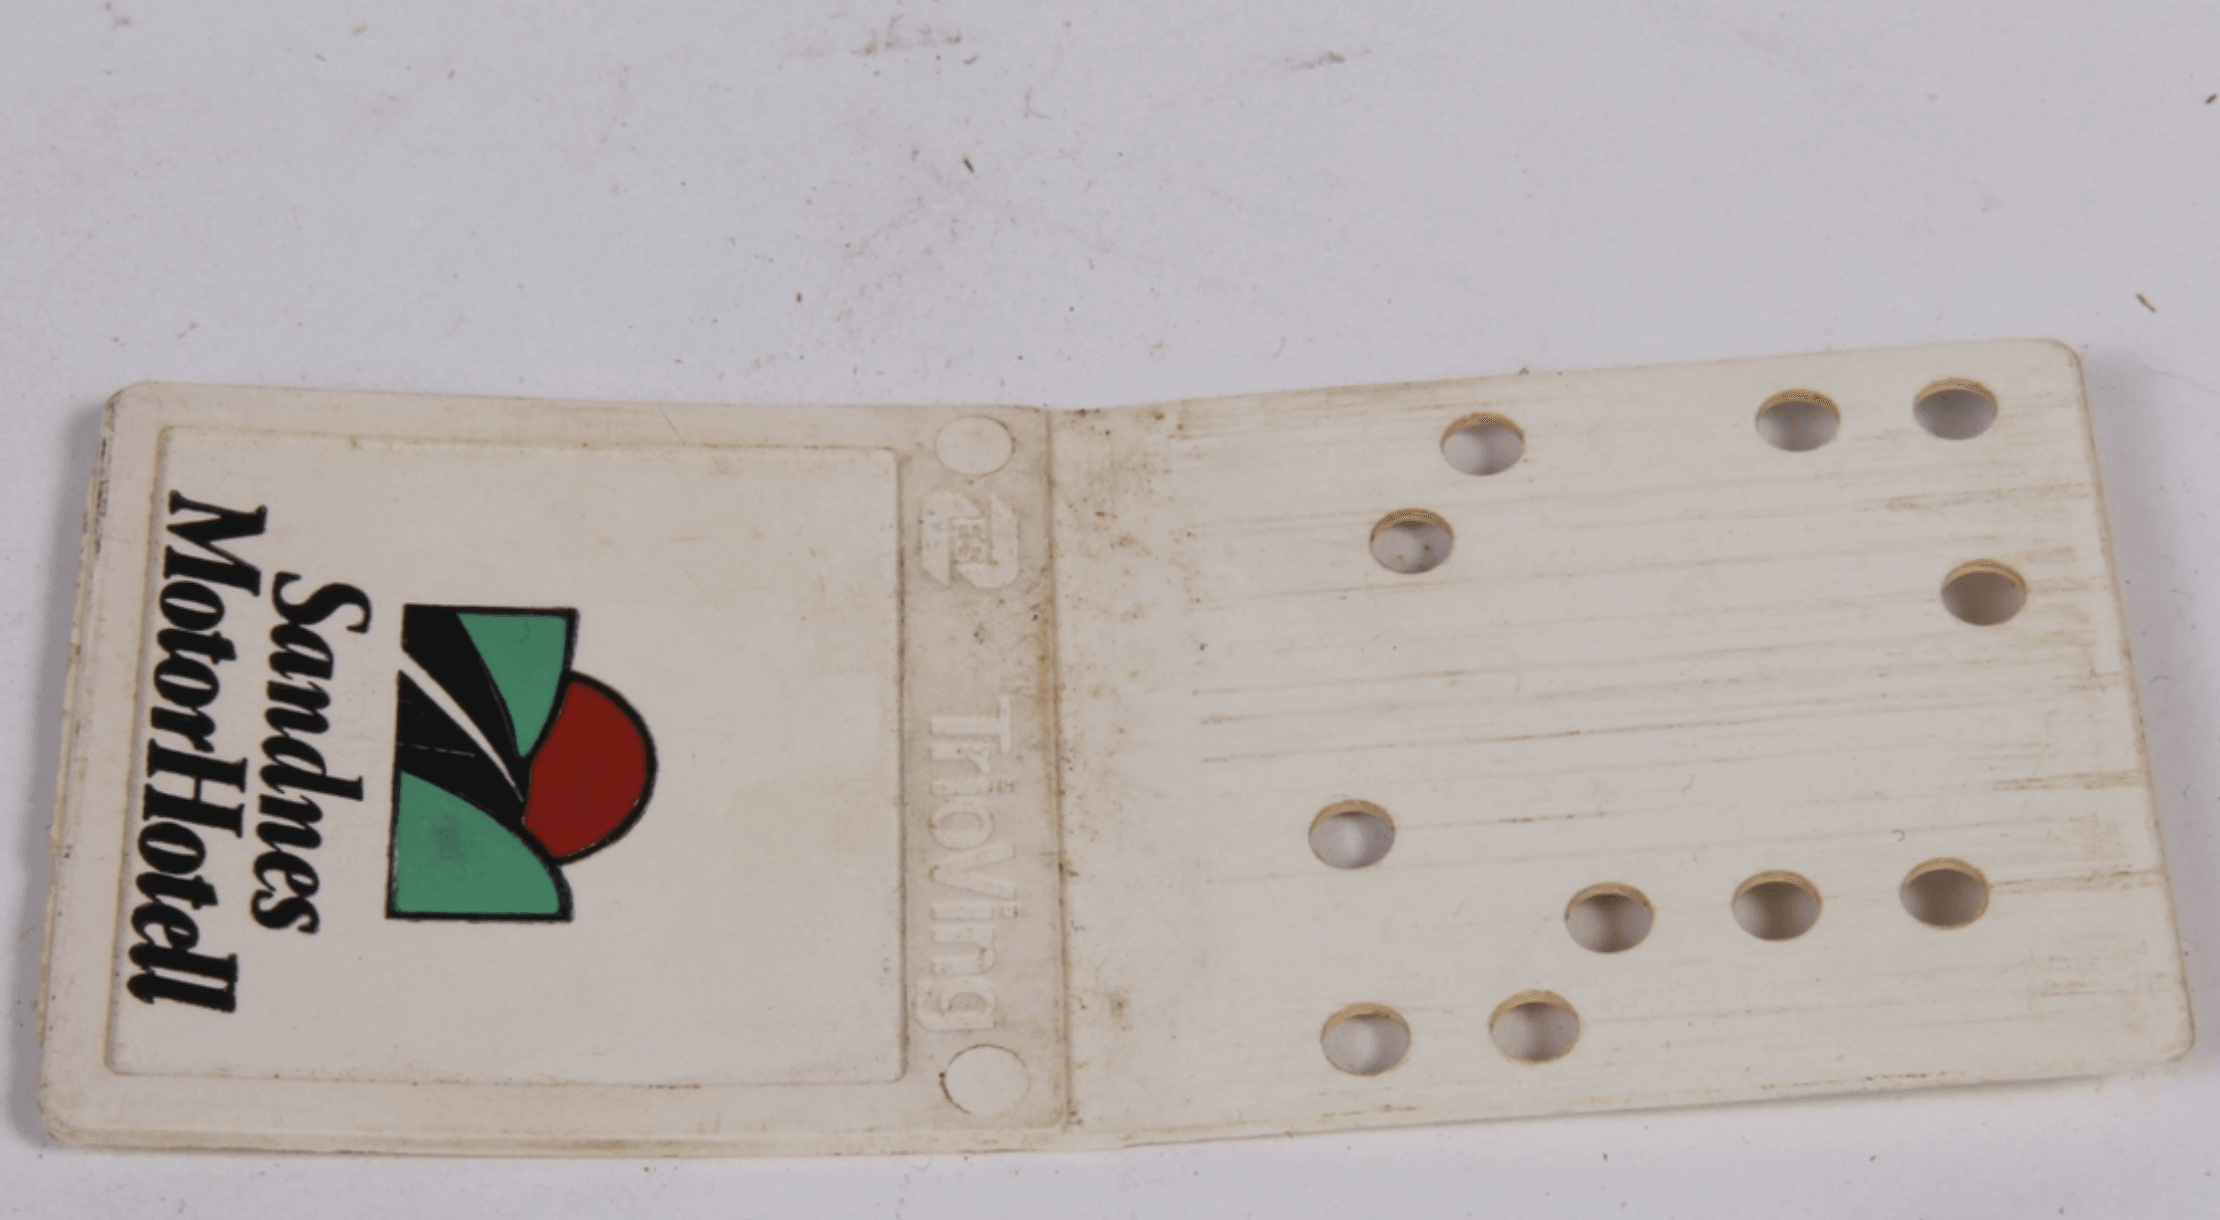 VingCard TrioVing early original plastic hotel key card with holes